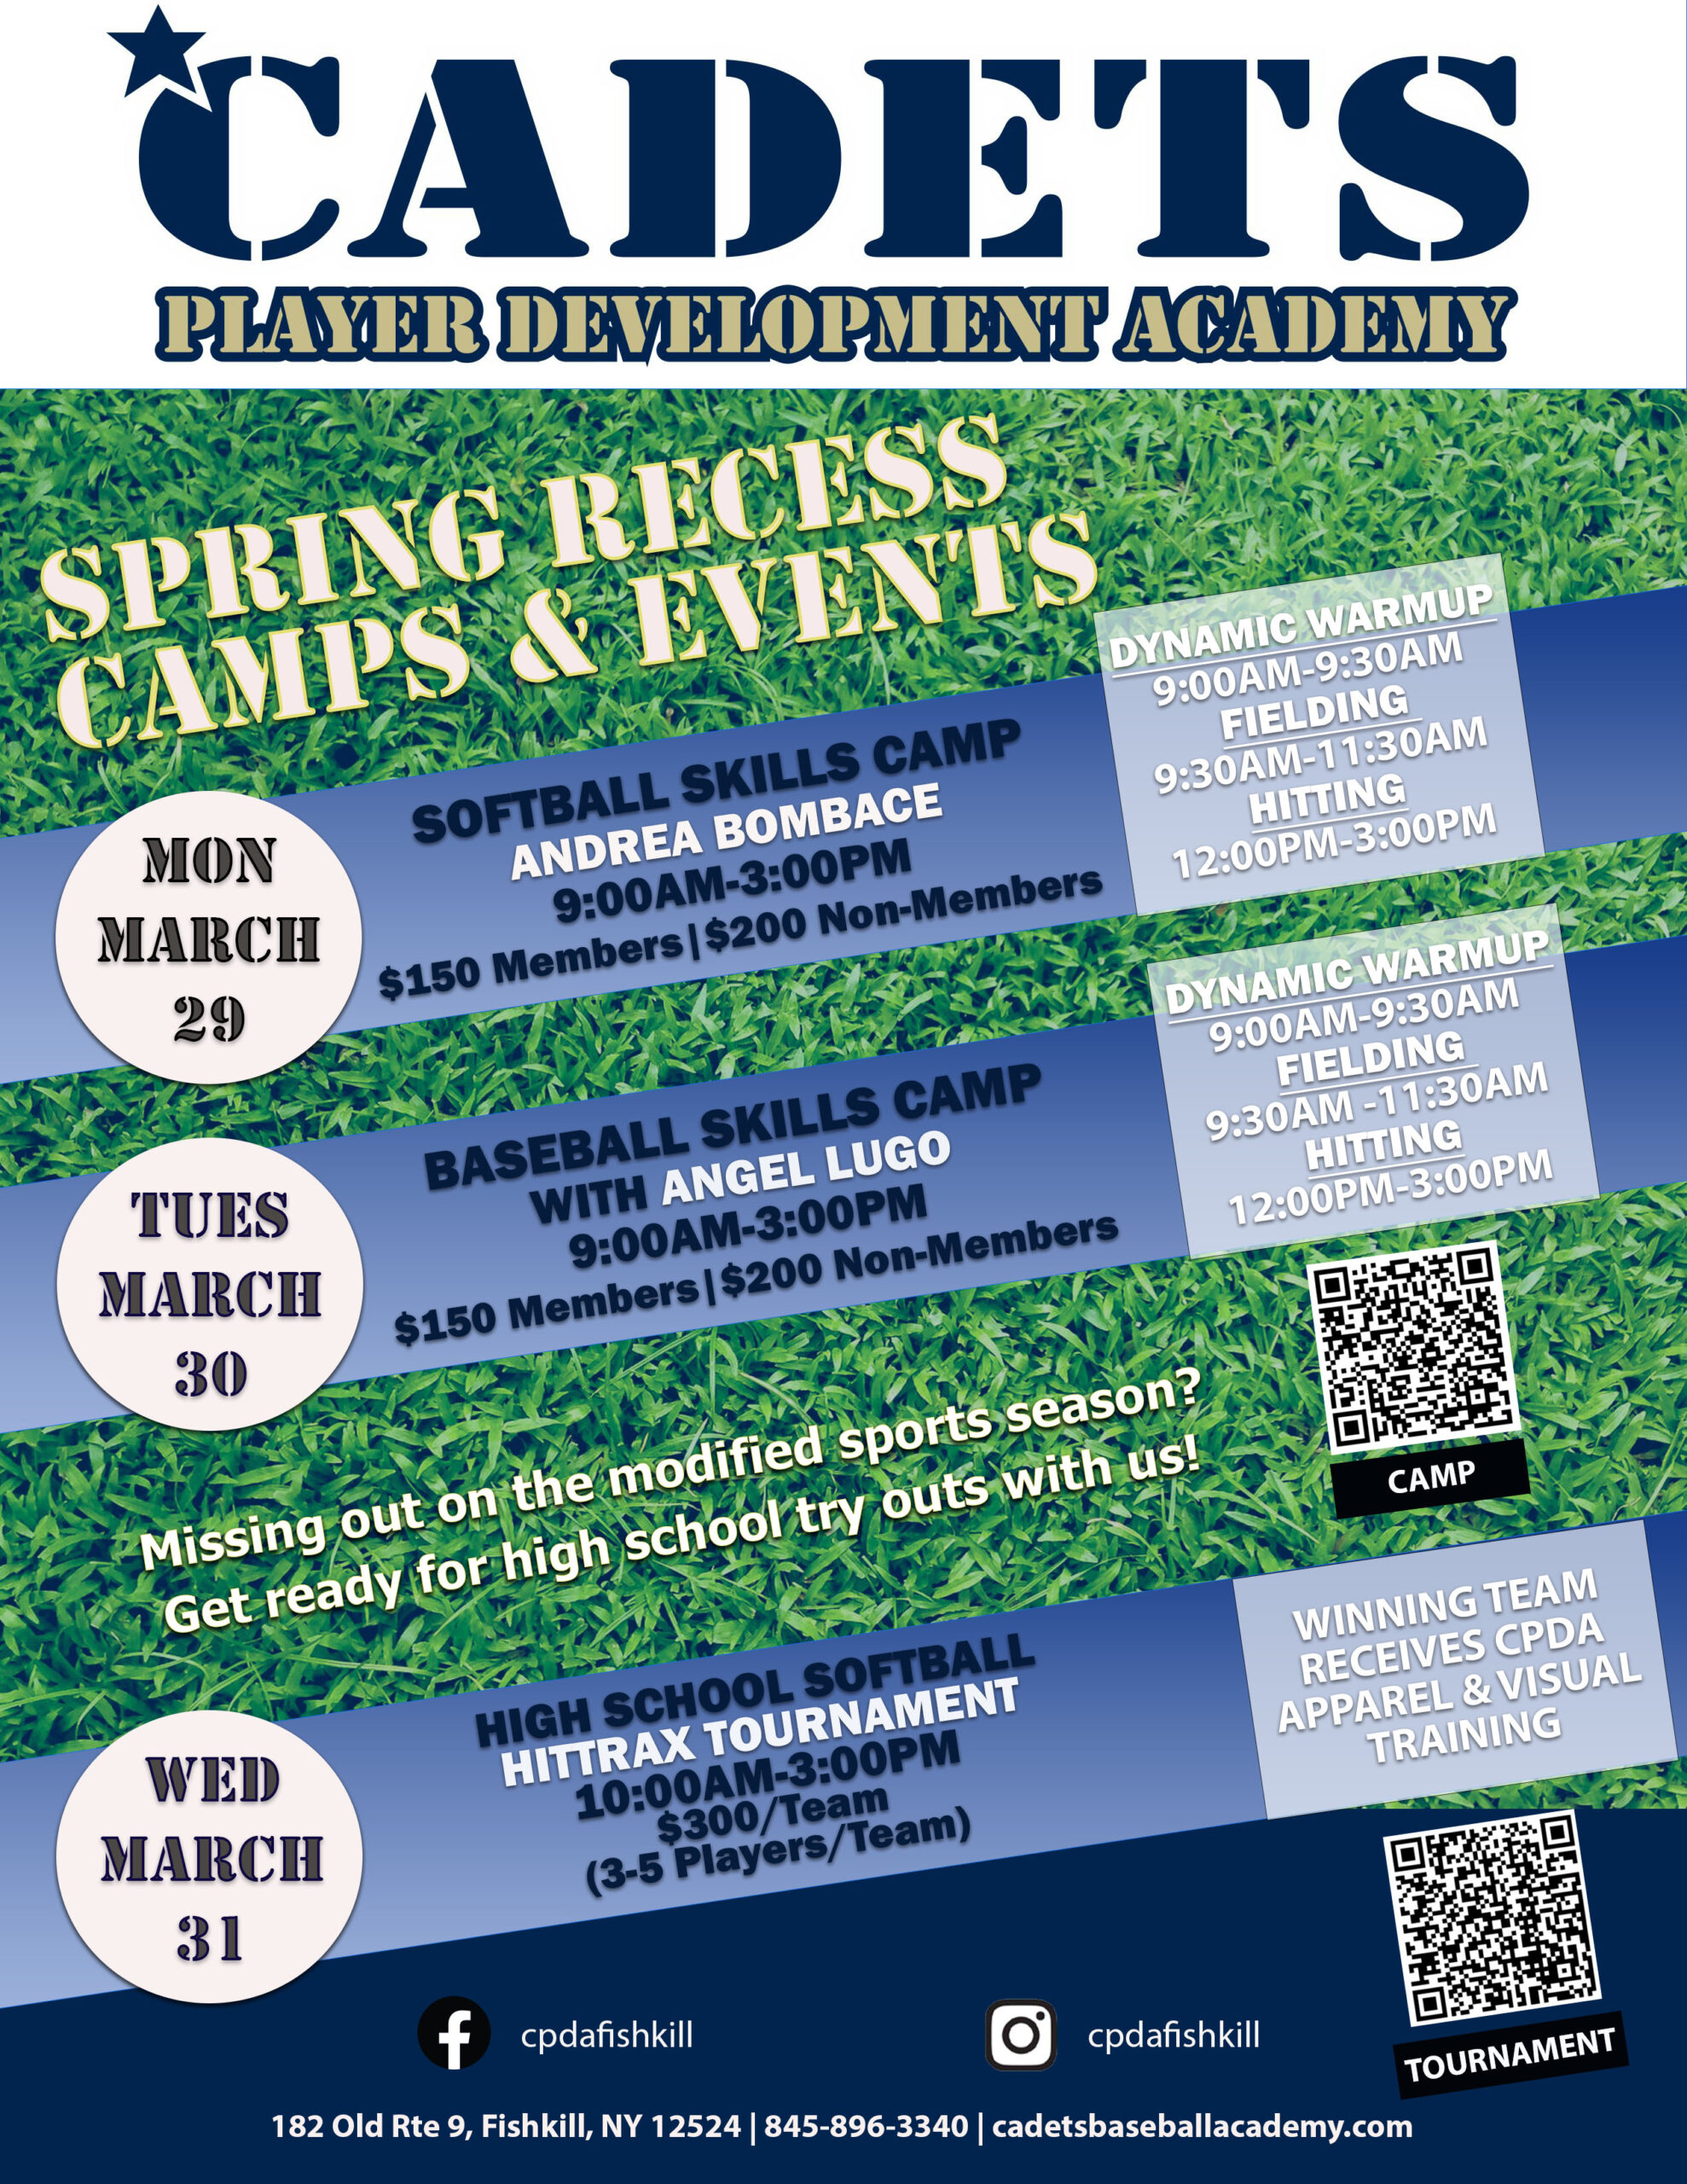 spring recess 3 events flyer